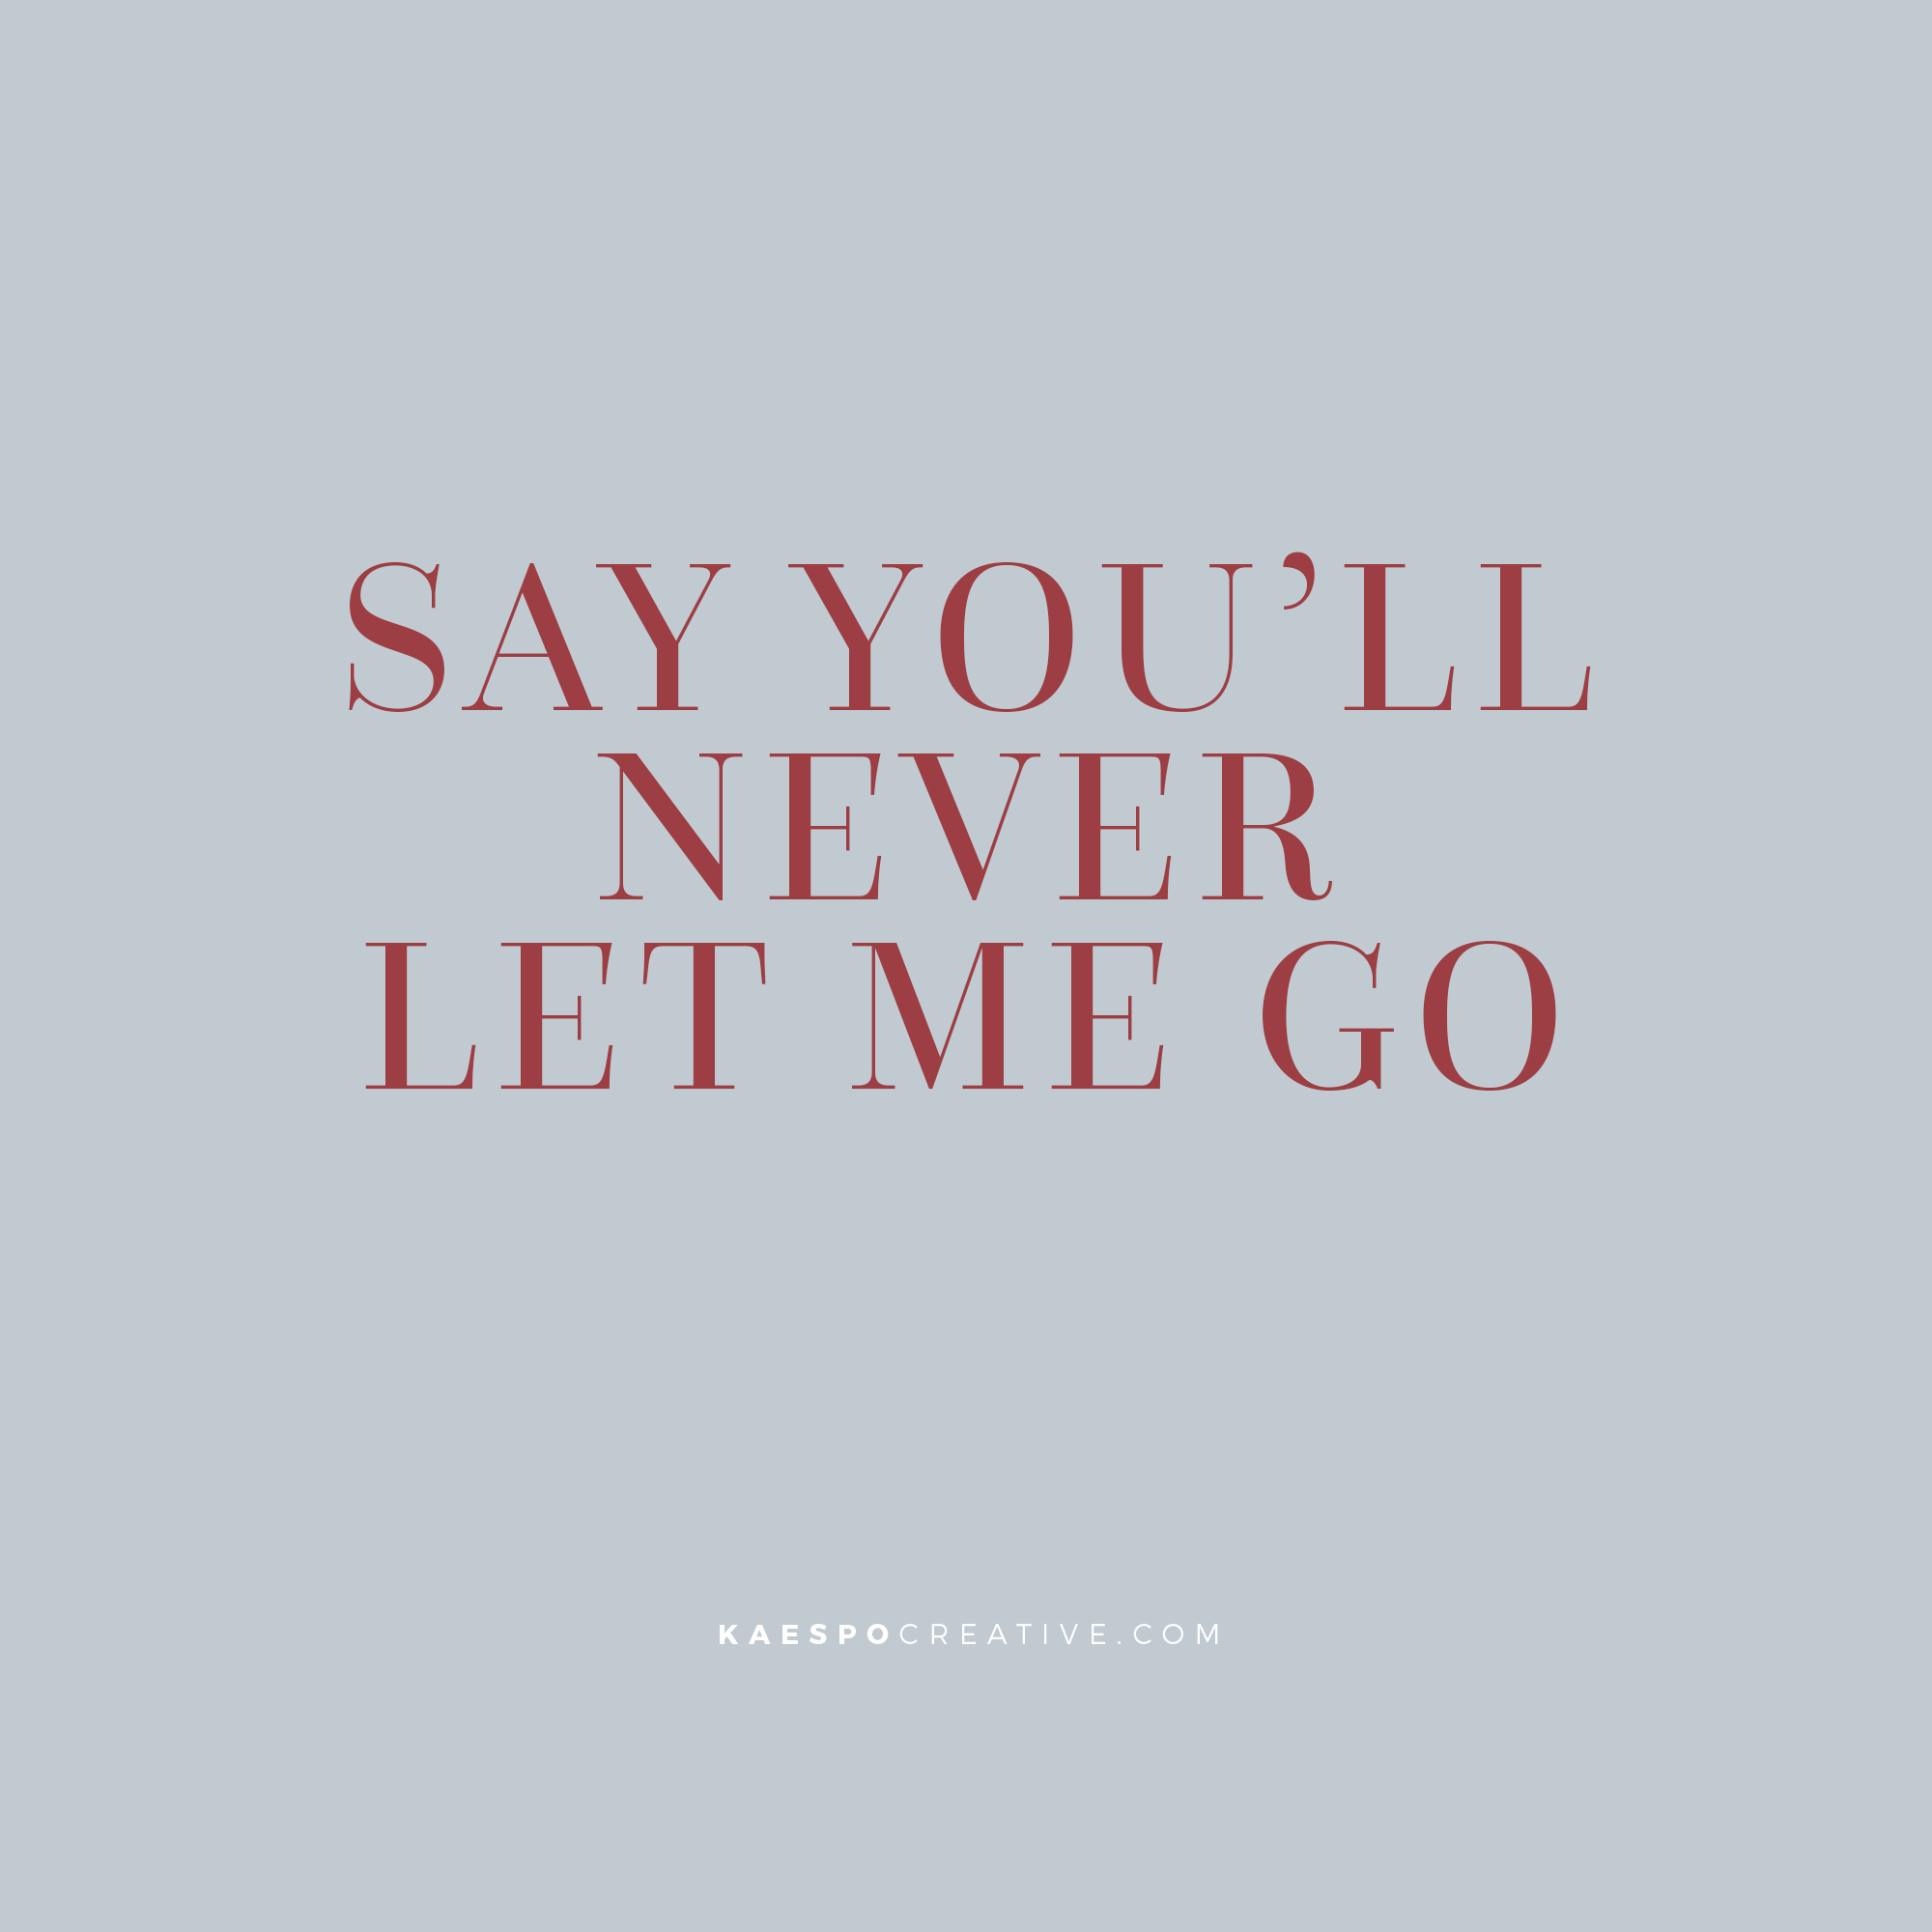 Valentines Day 2019 Quotes & Chainsmokers Lyrics by KAESPO | Minimal Design, Lifestyle Blog, and Creative Services